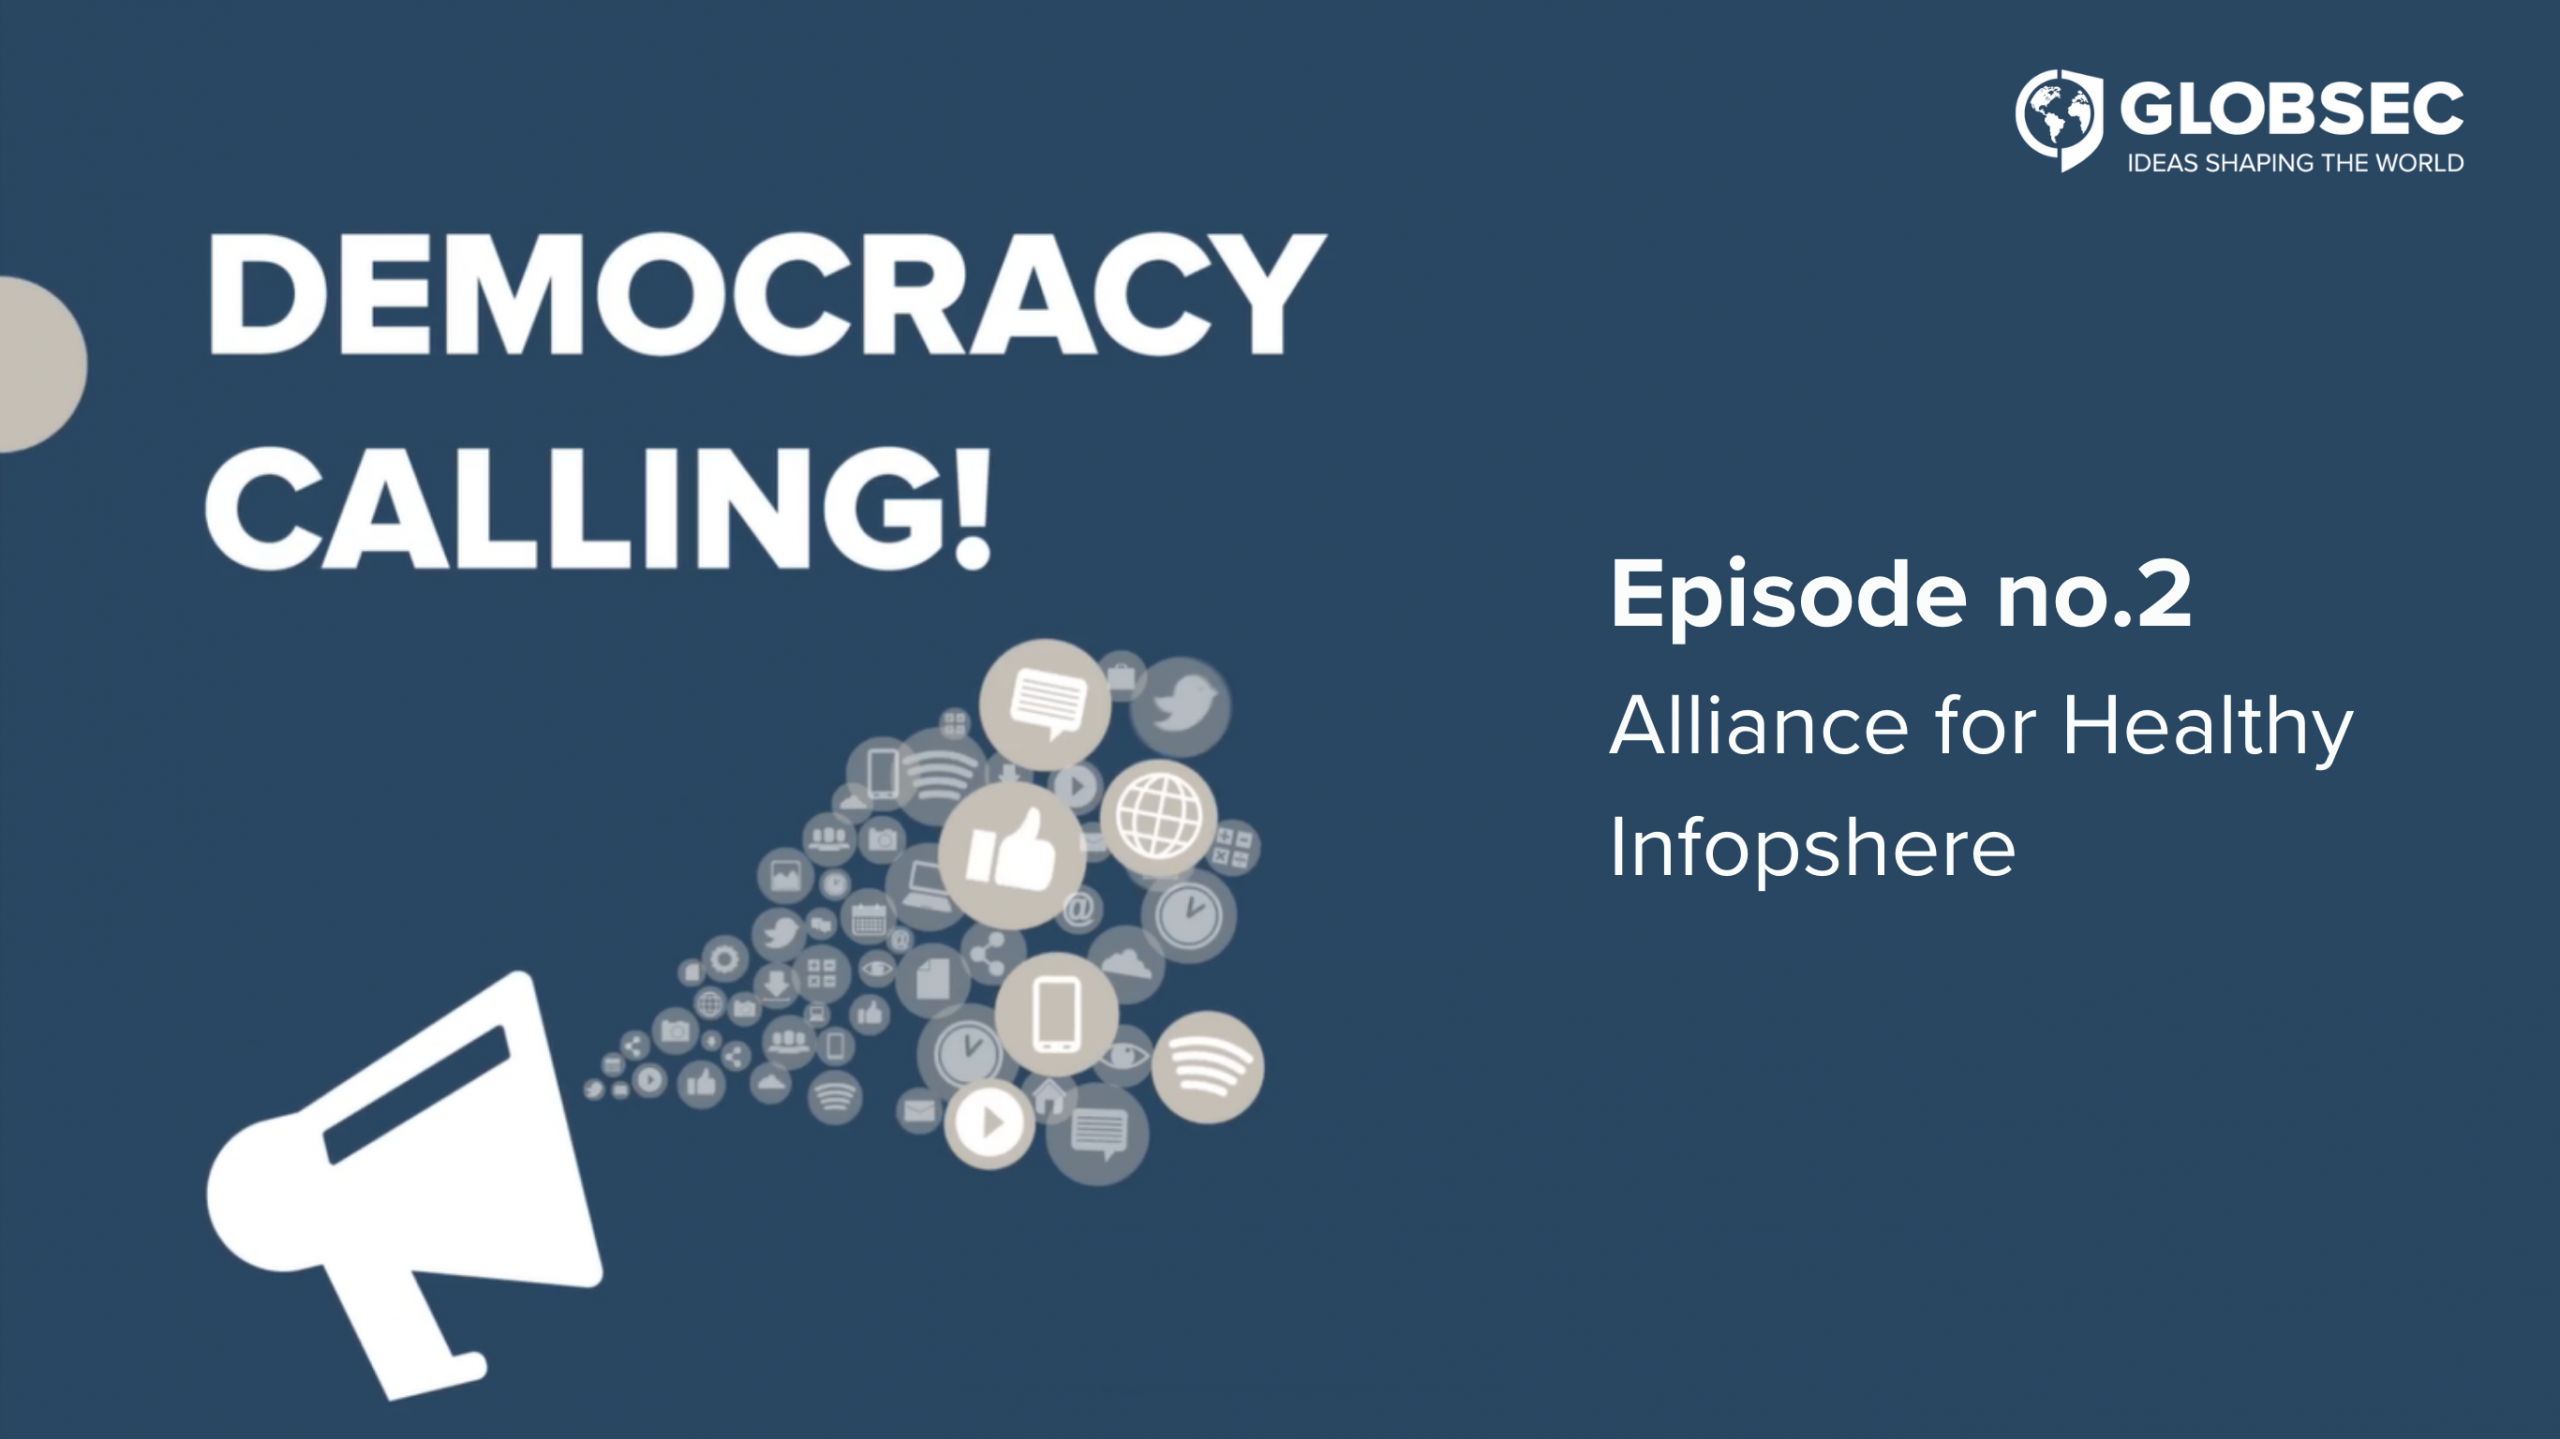 Democracy Calling! Ep. 2: Alliance for Healthy Infosphere